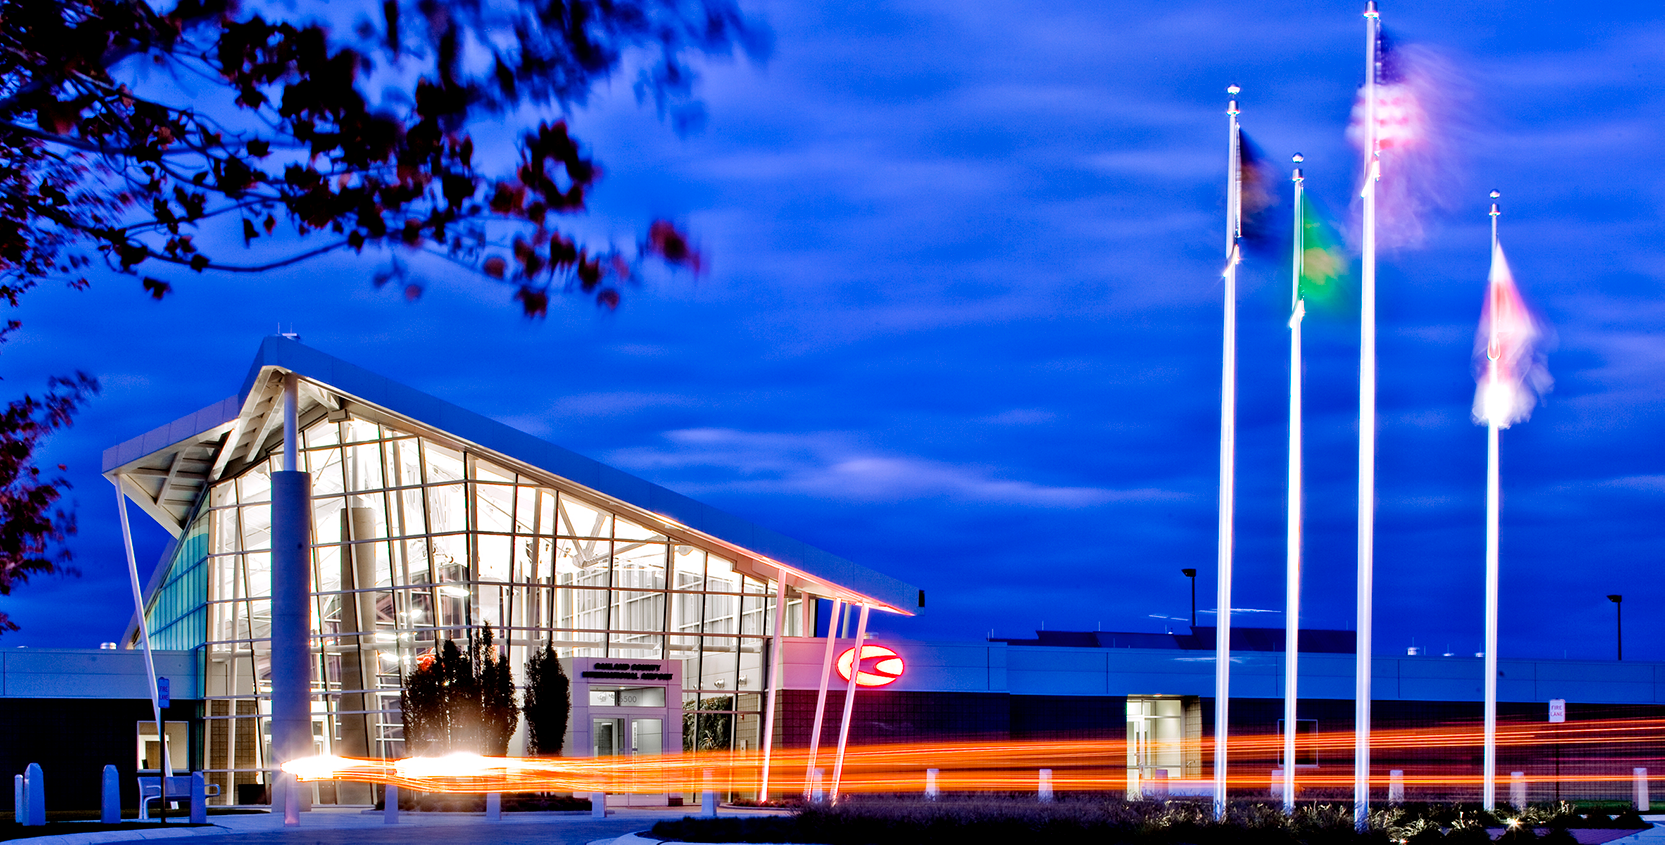 Oakland County International Airport New Terminal and Offices Exterior 1665x845